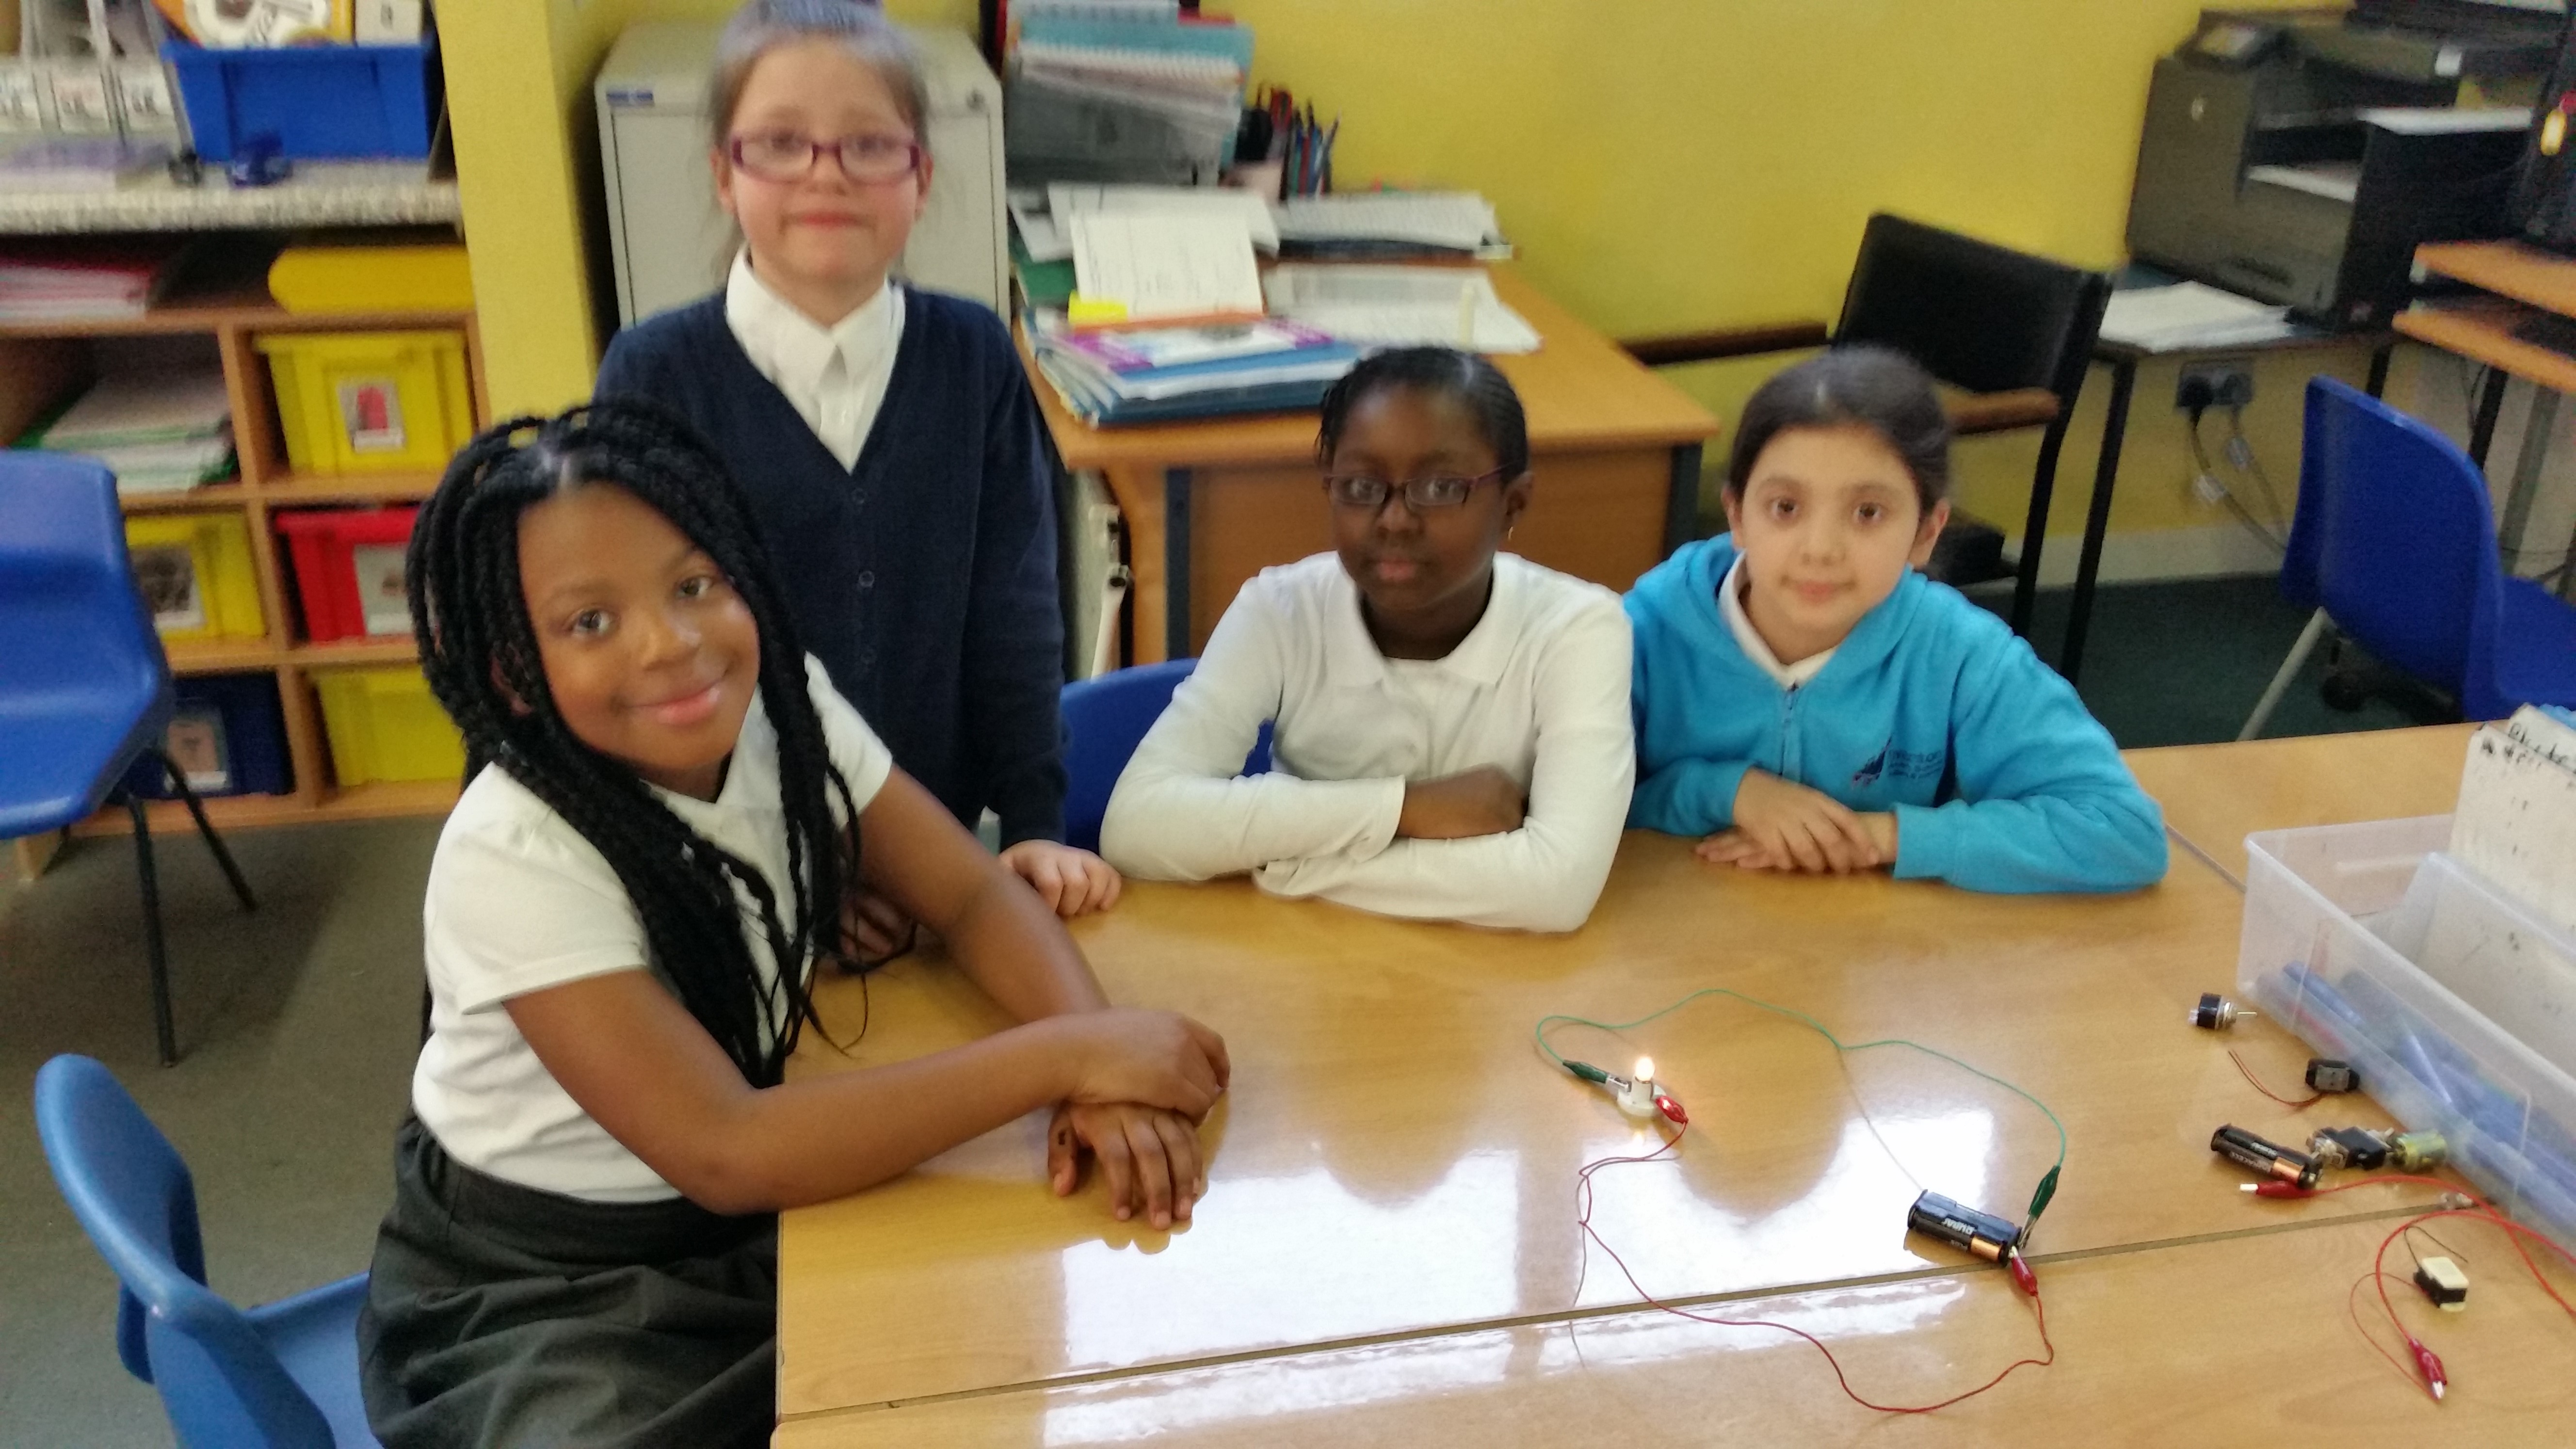 Learning About Electricity Tiverton Primary School Electrical Circuits 20170308 140929 141118 141535 141828 141924 142601